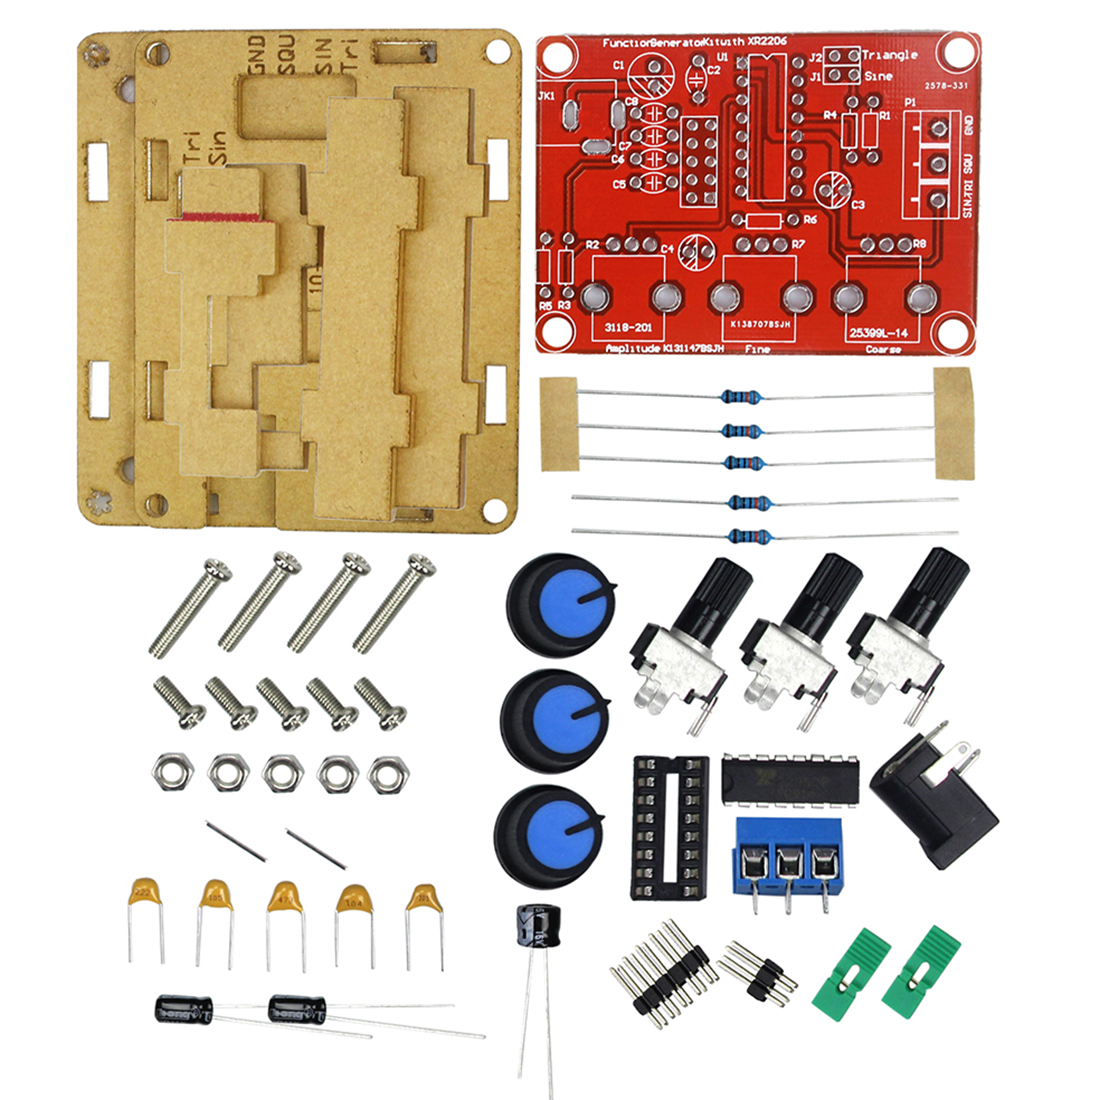 Feichao XR2206 Function Signal Generator DIY Kit Sine Triangle Square Wave  1HZ-1MHZ DDS with Manual